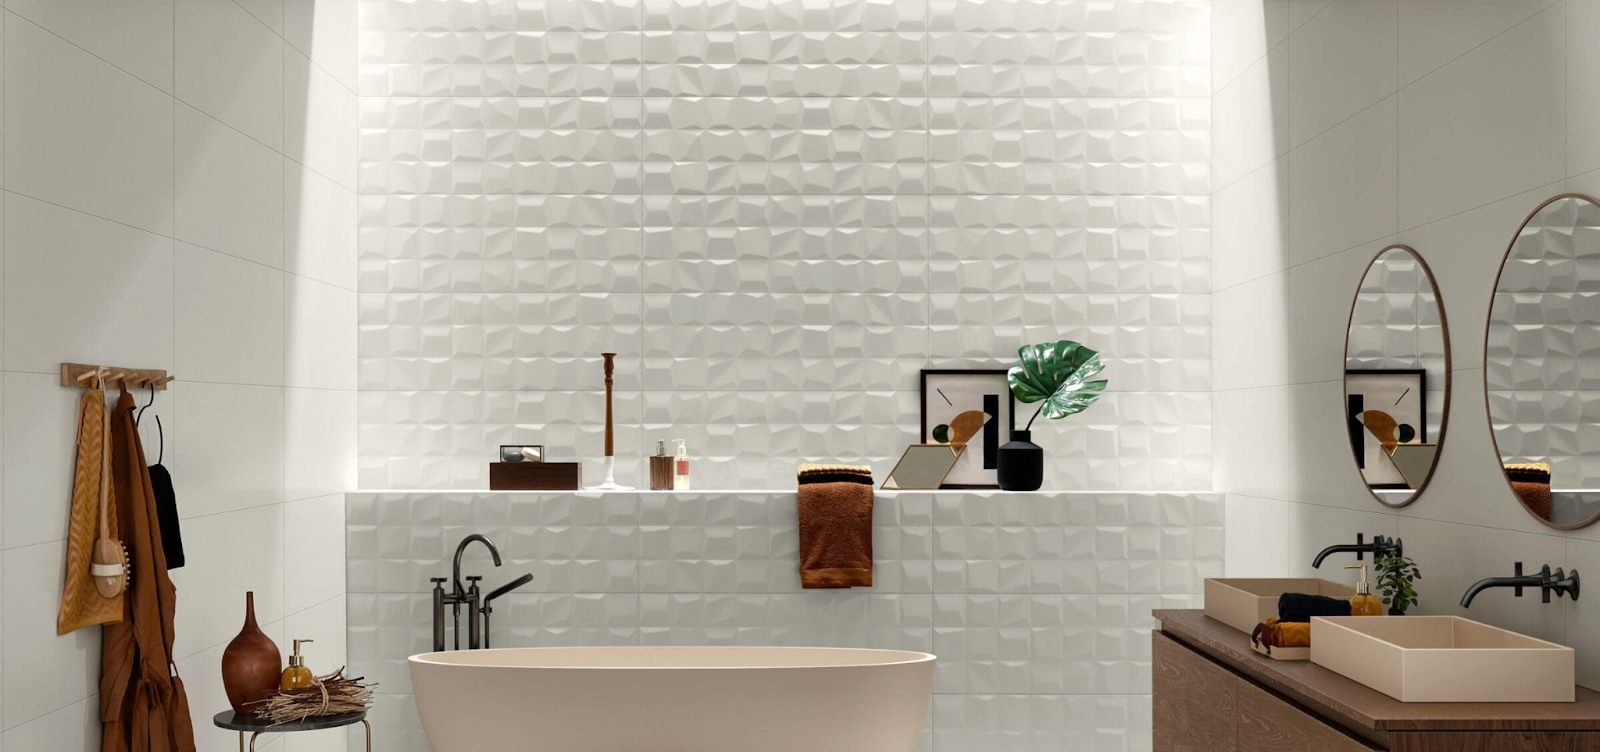 3D square white wall tile in a bathroom